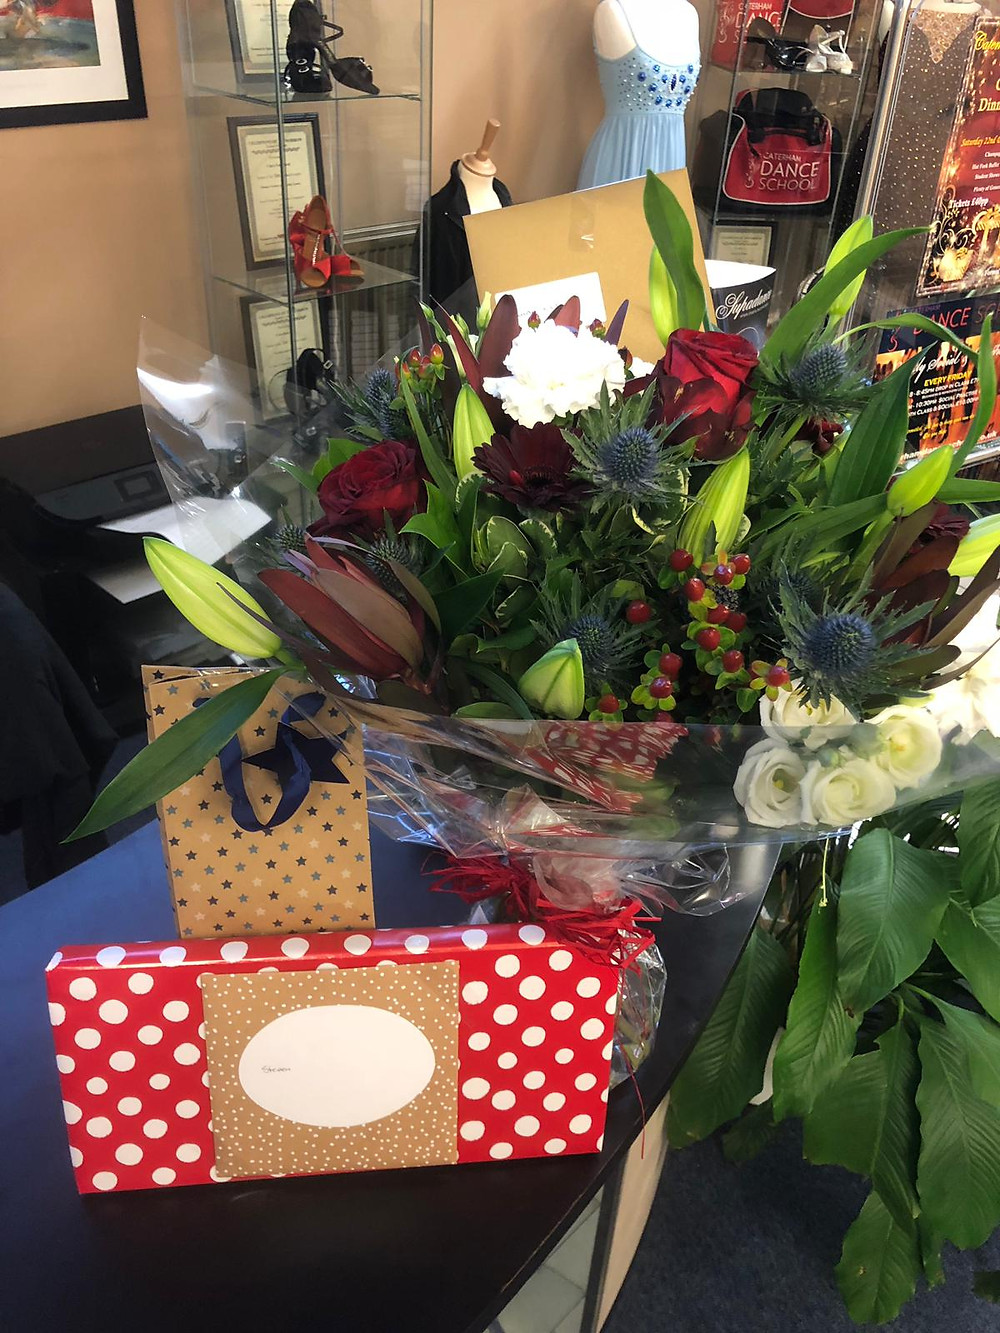 Some flowers of thanks, amongst amazing messages and cards